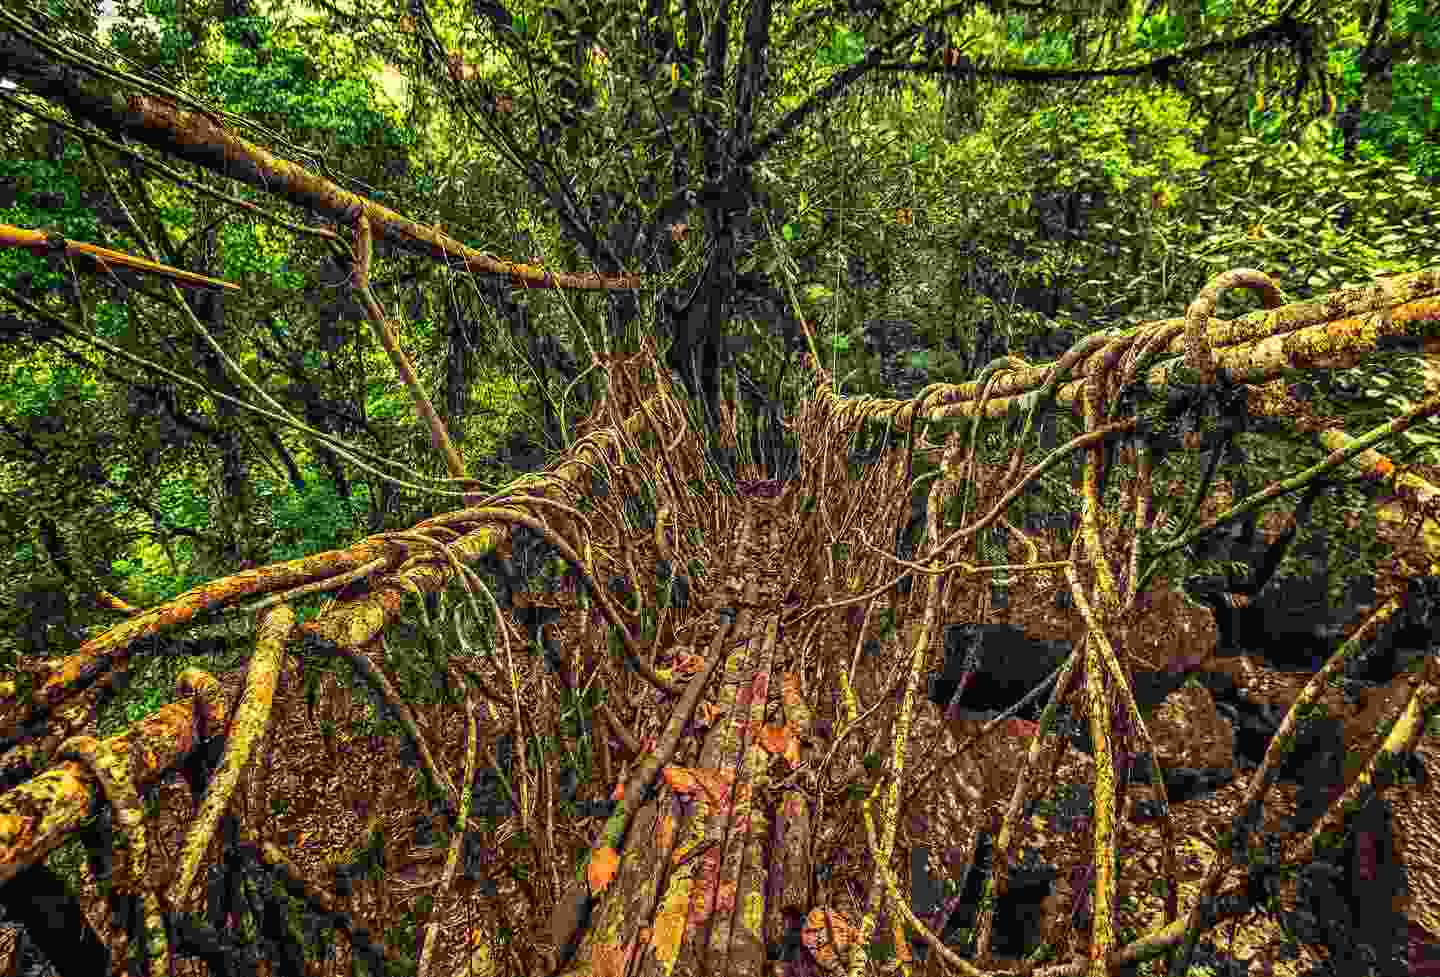 Living root bridge in Meghalaya, India (Shutterstock)